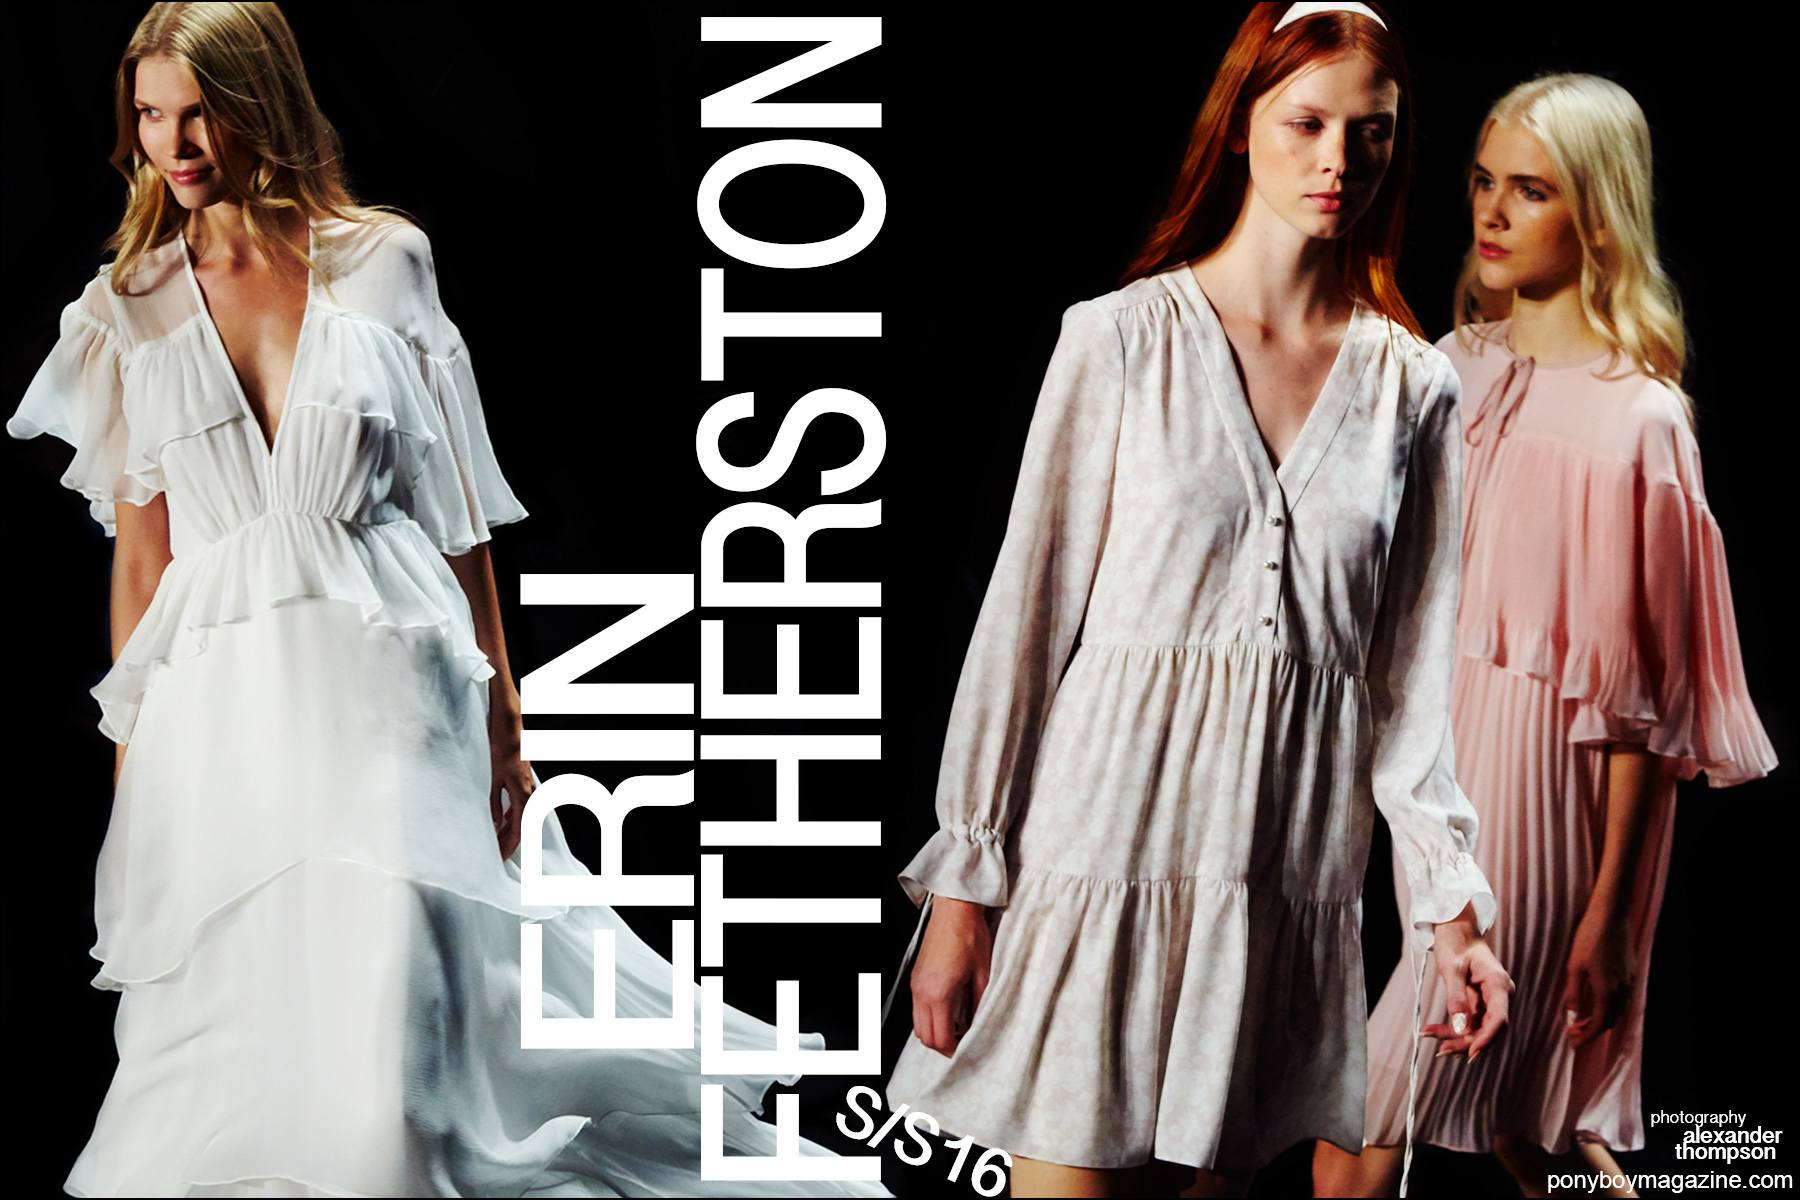 The Erin Fetherston Spring/Summer 2016 womenswear show, photographed by Alexander Thompson for Ponyboy magazine.